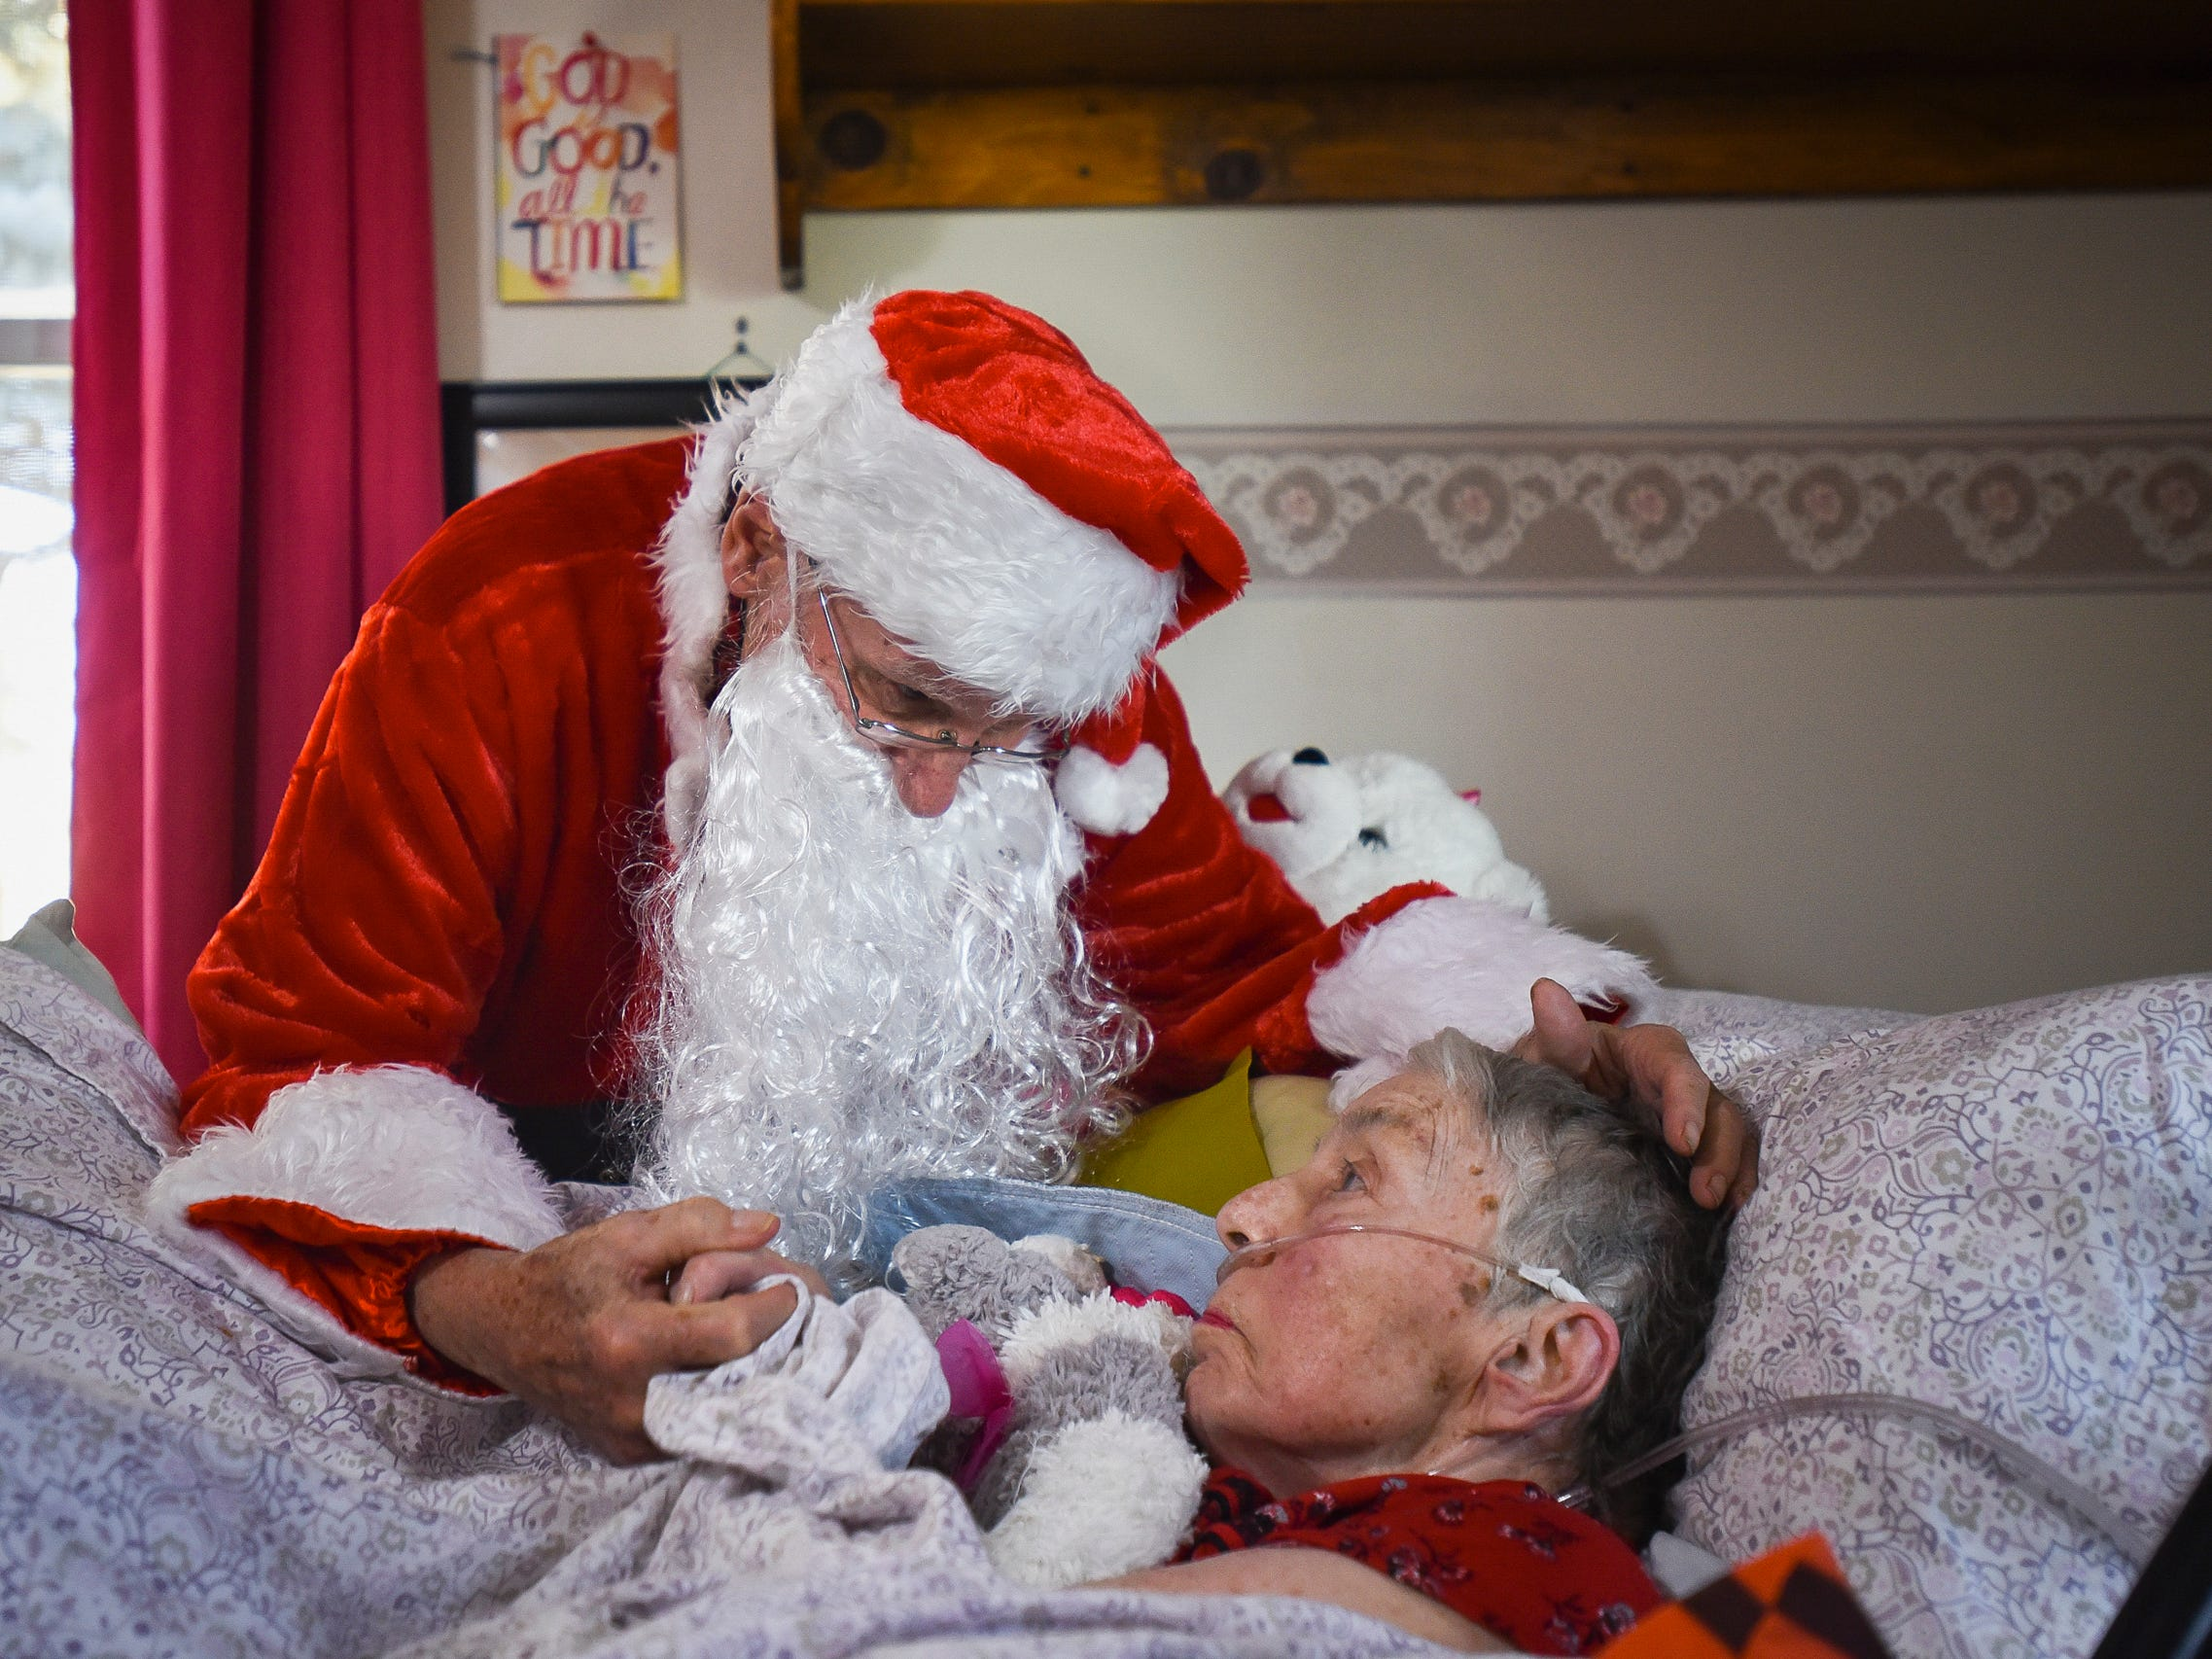 Don West, 90, of Eaton Rapids, leans in to kiss his wife Jackie goodnight, Saturday, Dec. 8, 2018, at Golden Days II Adult Foster Care in Charlotte following a Christmas party for residents and staff at the home.  Don hired a musician, brought gifts, and sang and danced for his wife of 64 years.  Jackie, who died Jan. 14, had been at the home since her stroke in June of 2017.